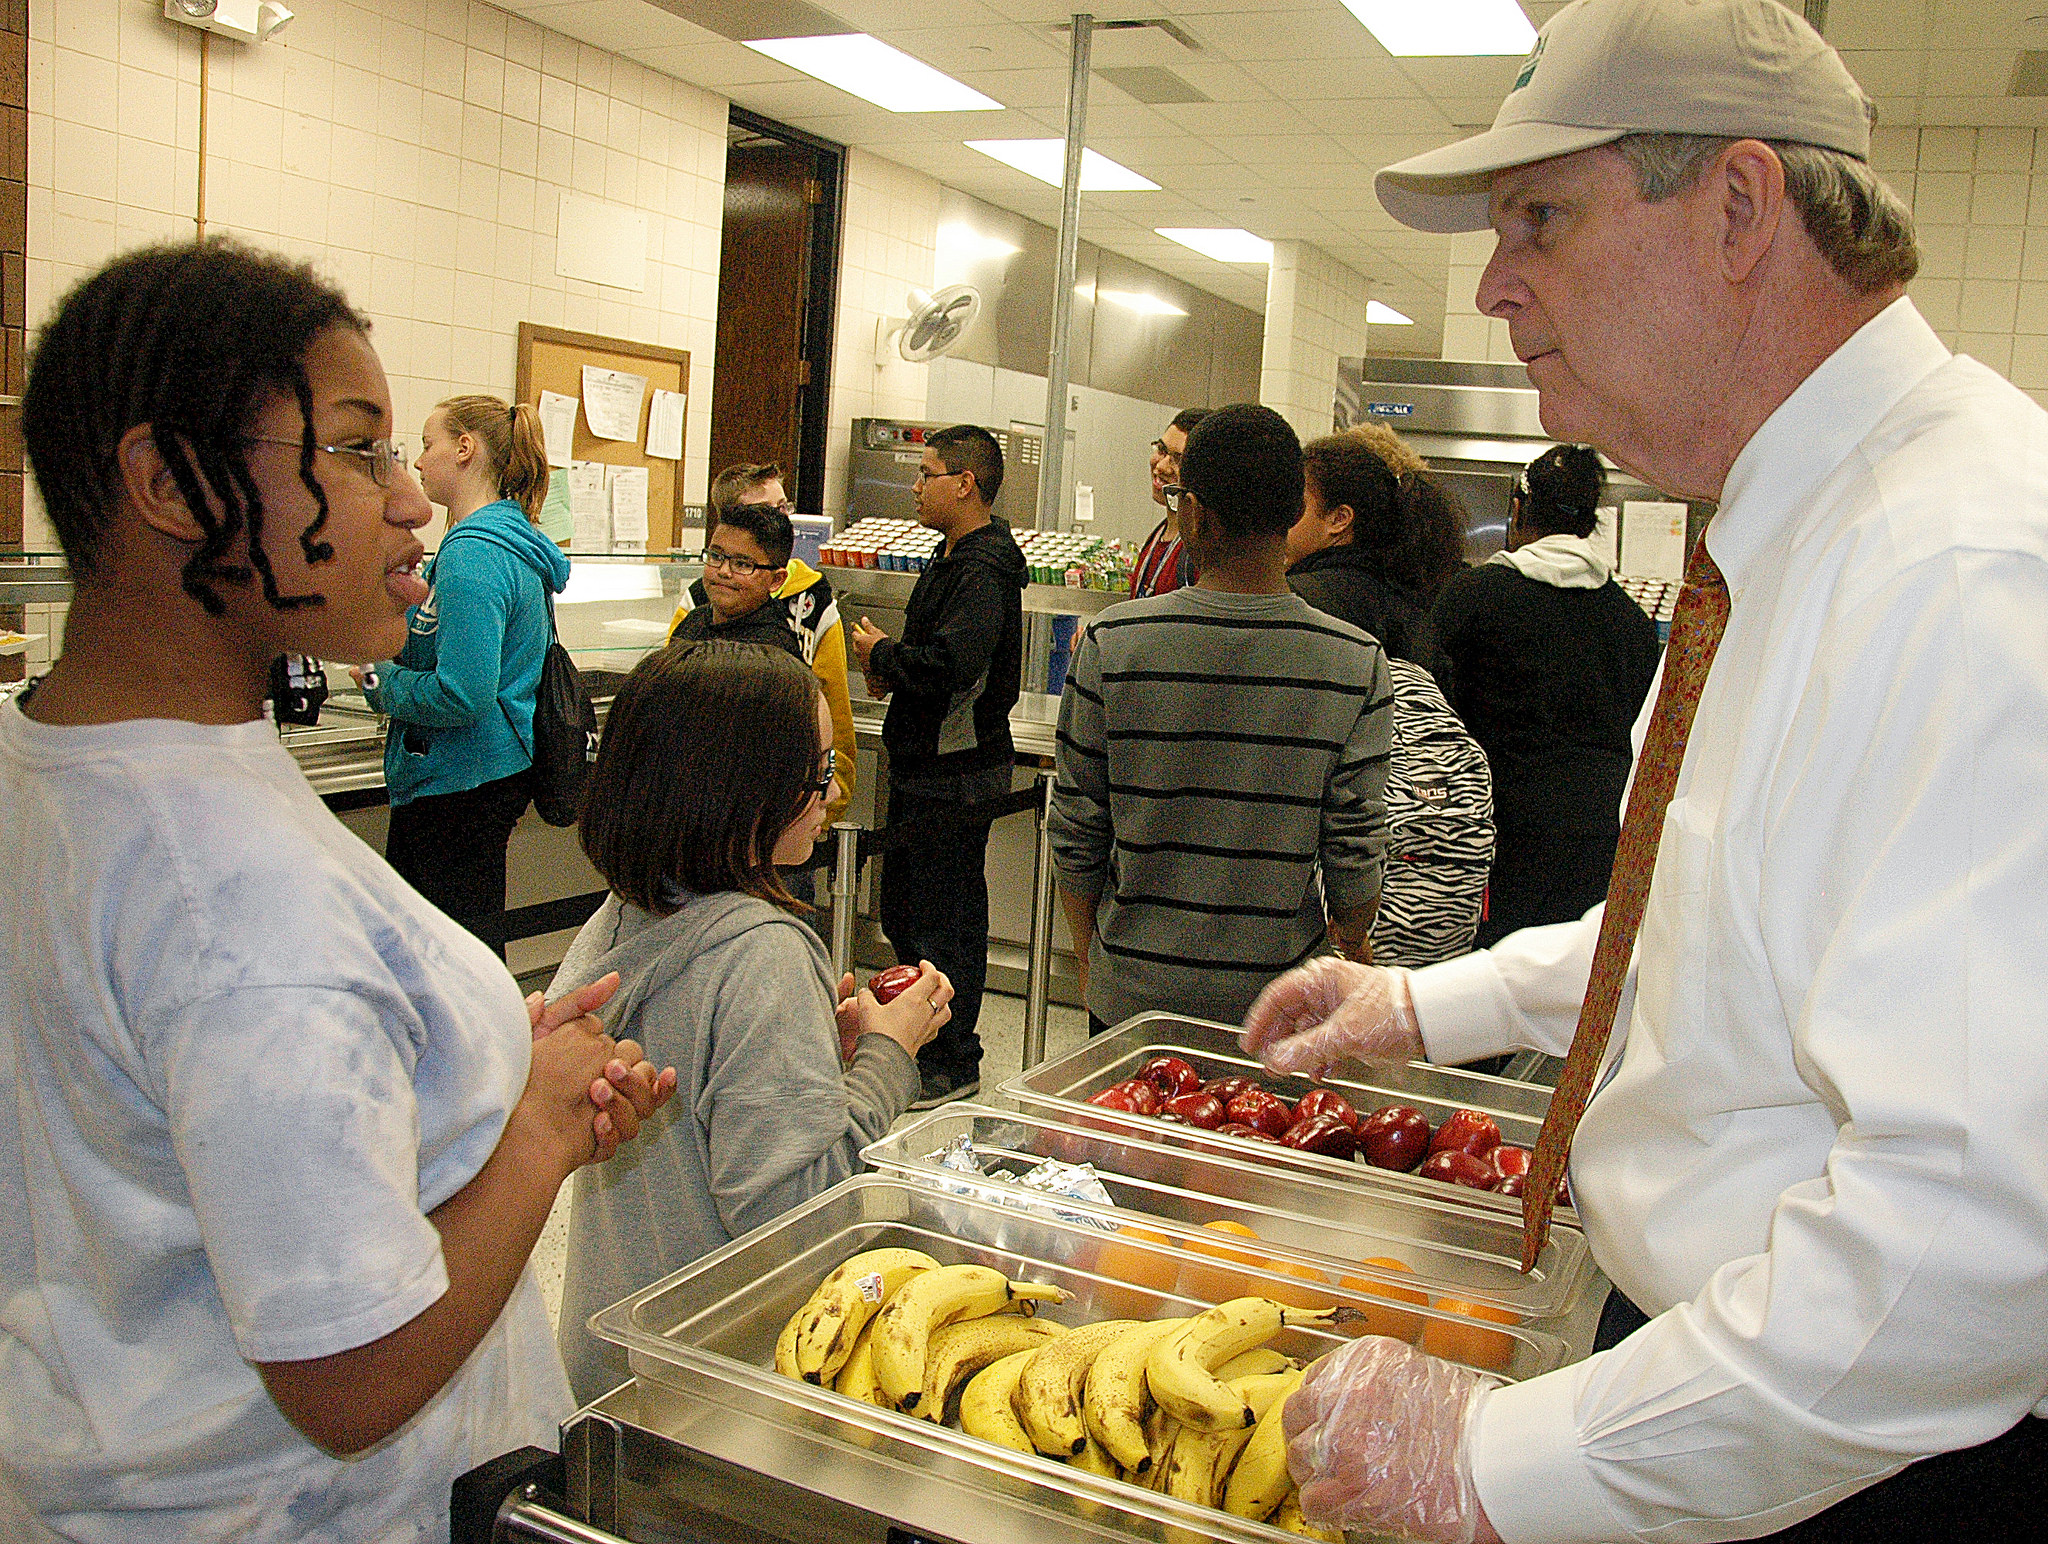 Agriculture Secretary Tom Vilsack serves Des Moines, IA McCombs Middle School student Miracle Kizer